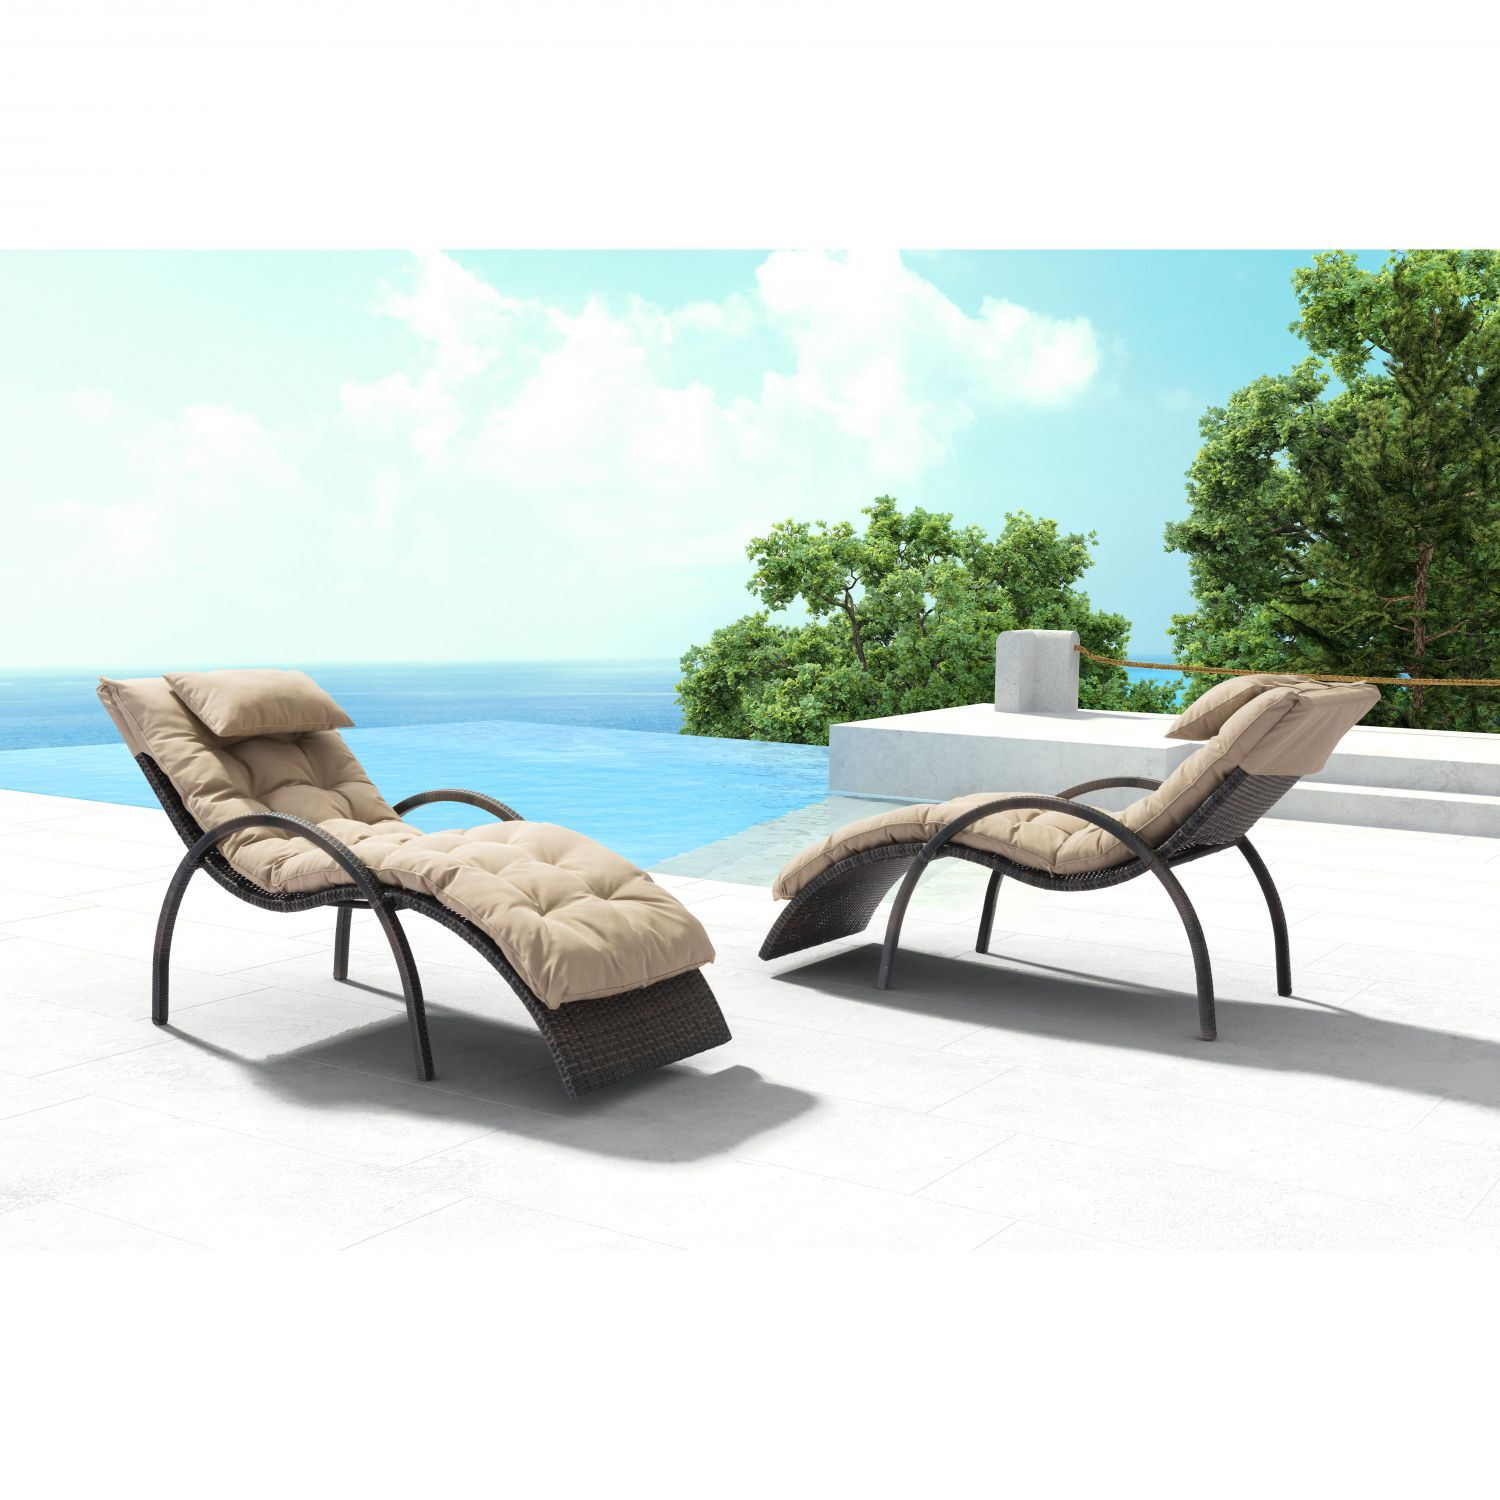 Eggertz beach chaise lounge brown beige 703841 zuo for Breezy beach chaise